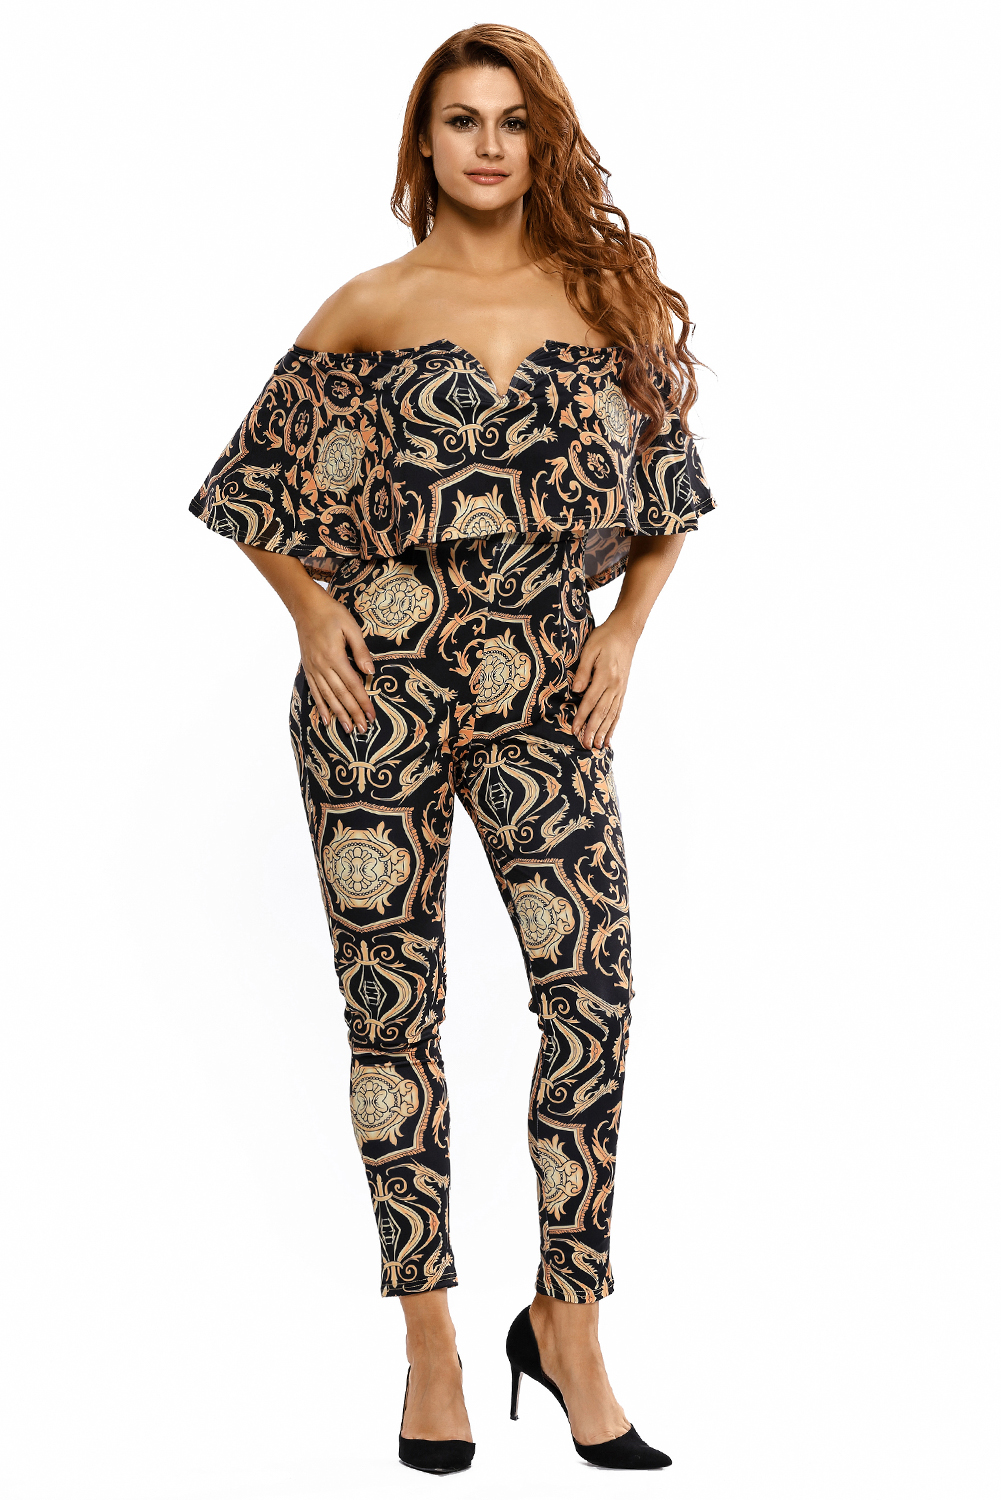 Black-yellow-tapestry-print-belted-jumpsuit-stage-dance-wear-women-autumn-brief